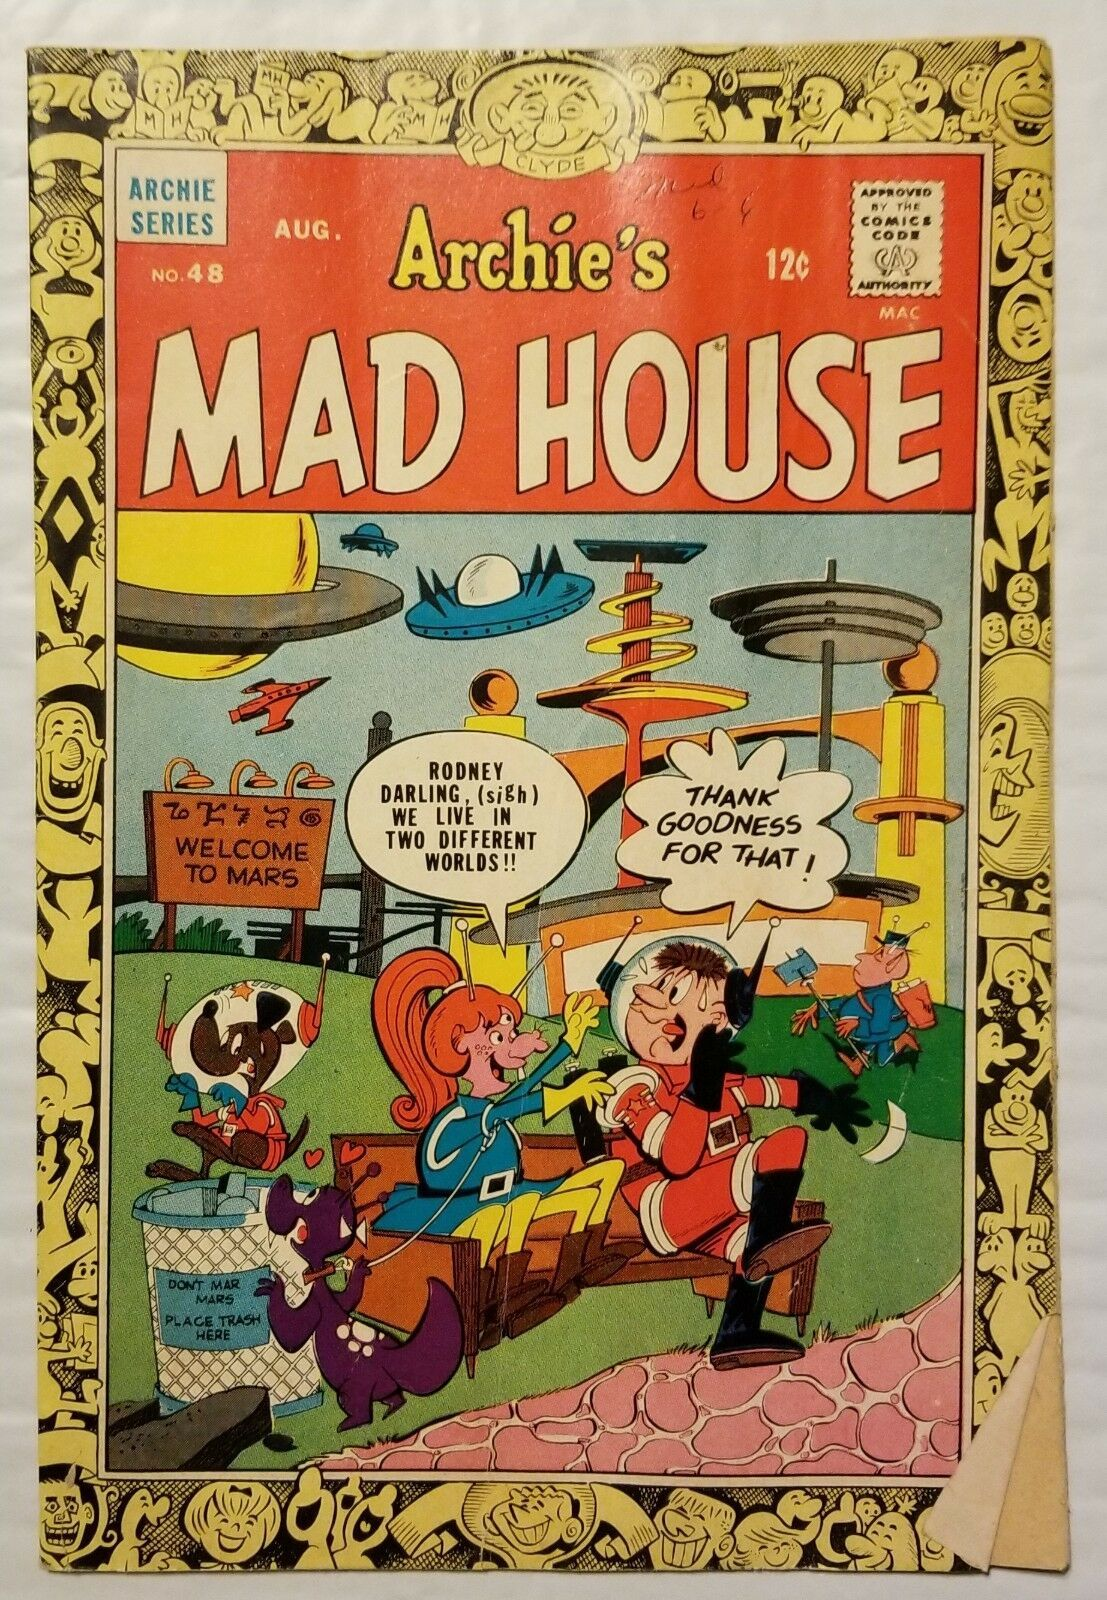 Primary image for Archie Comics VMad House #48 1966